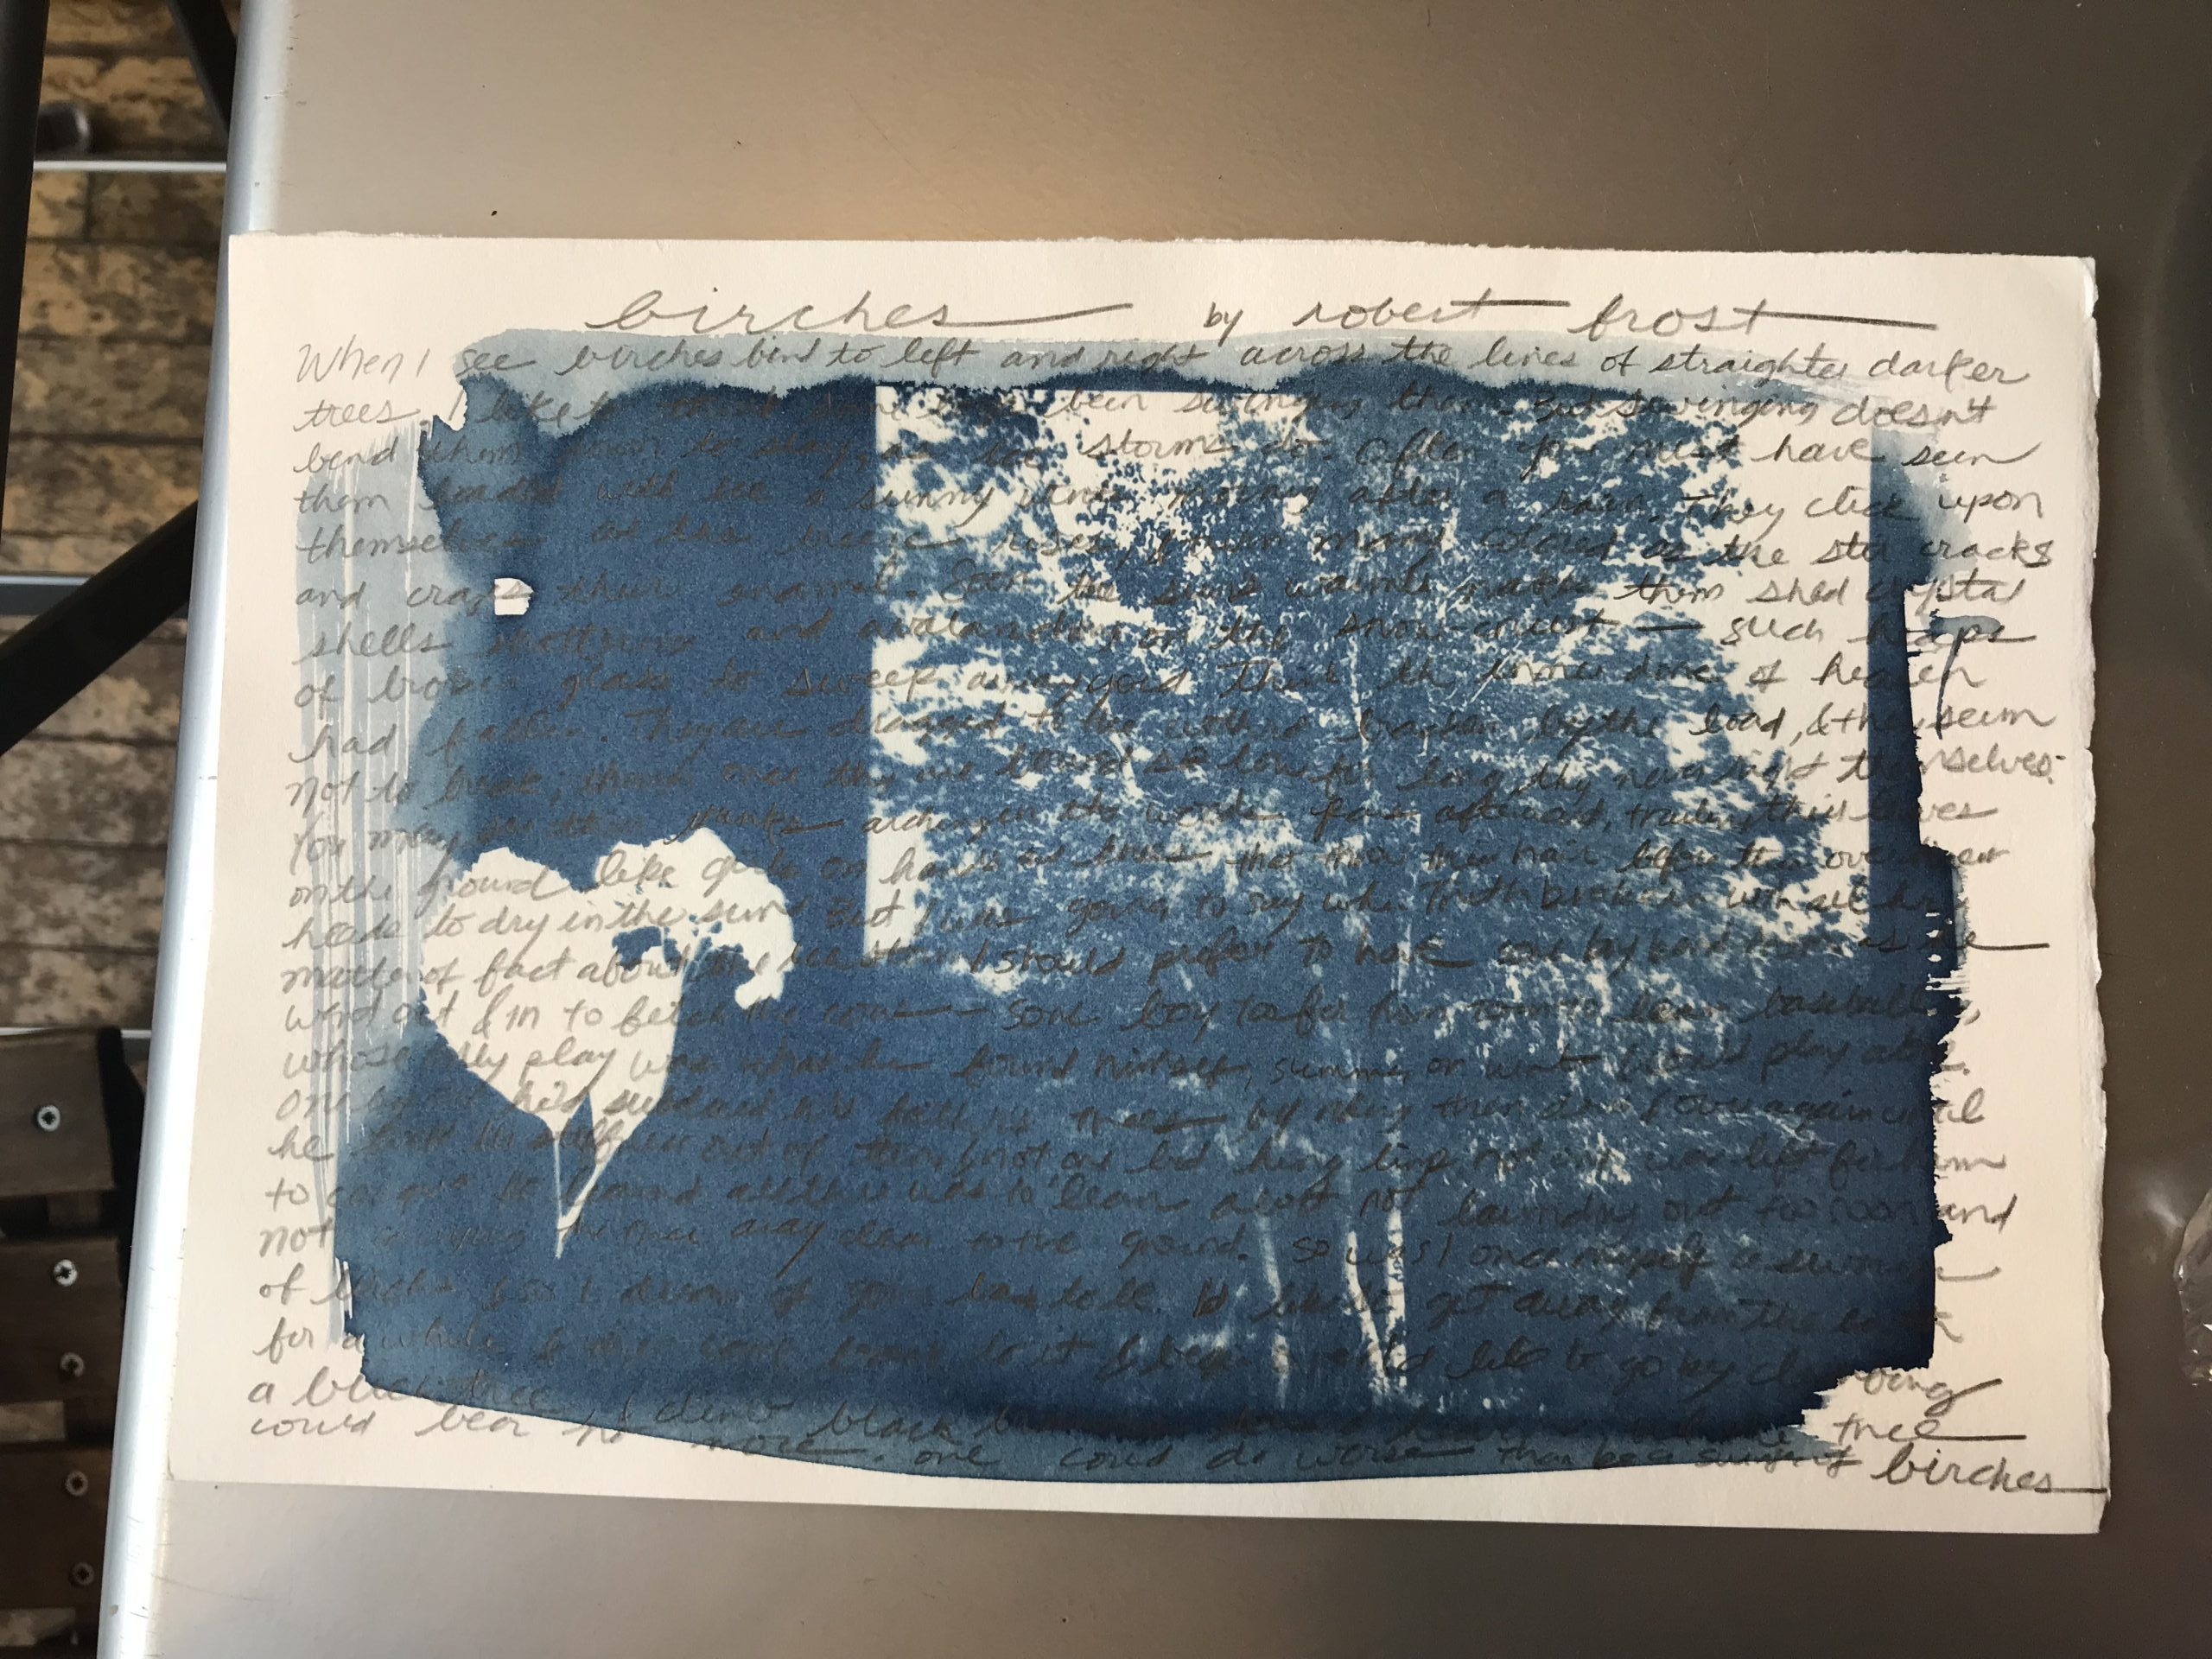 Alternative process photography with handwritten text.